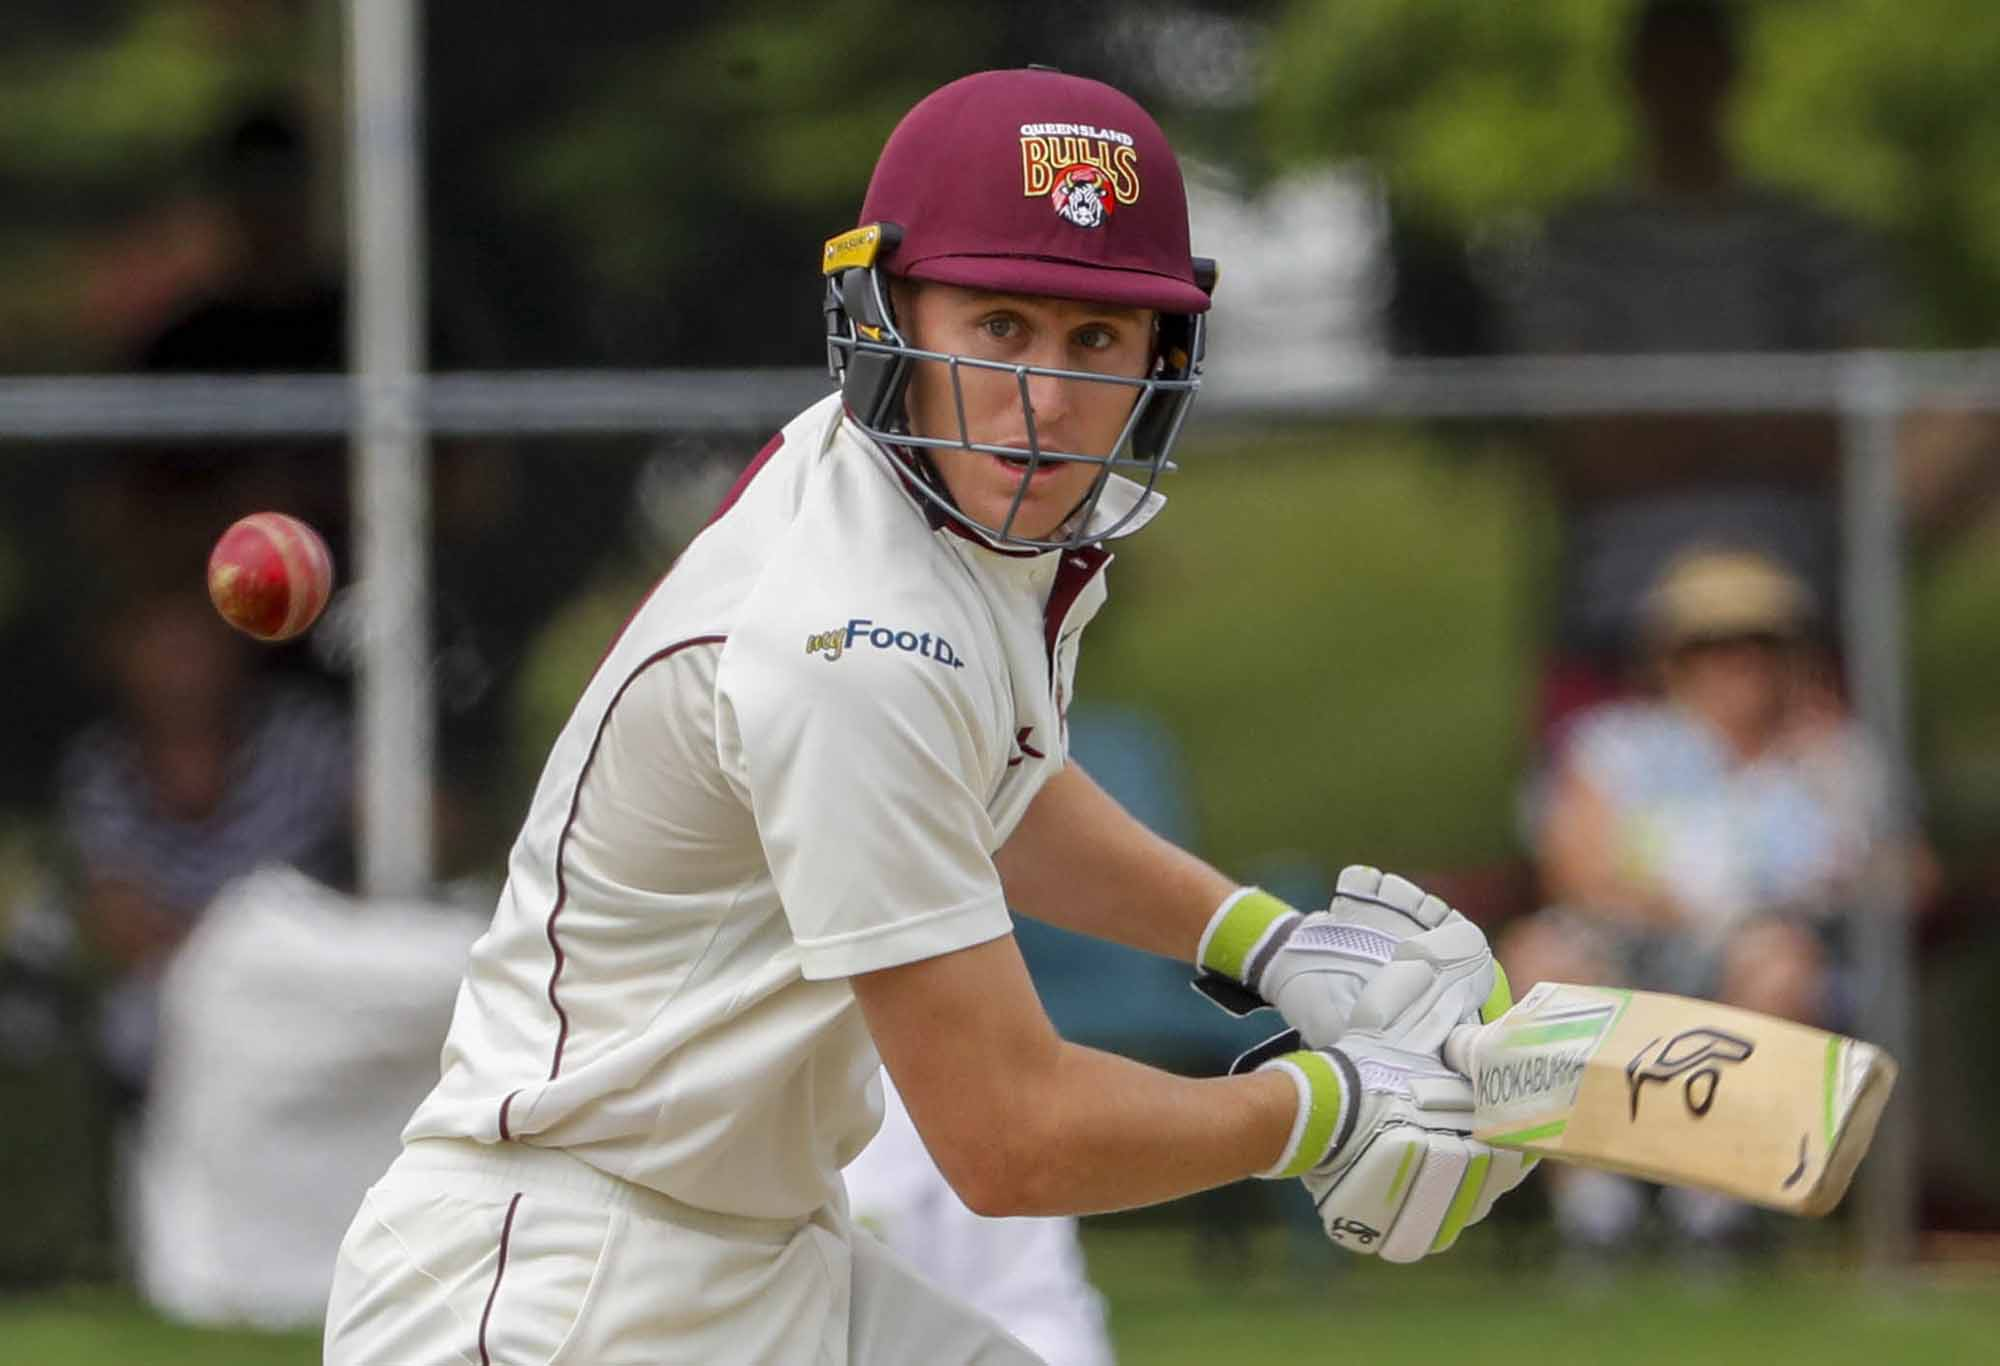 Marnus Labuschagne batting for the Bulls